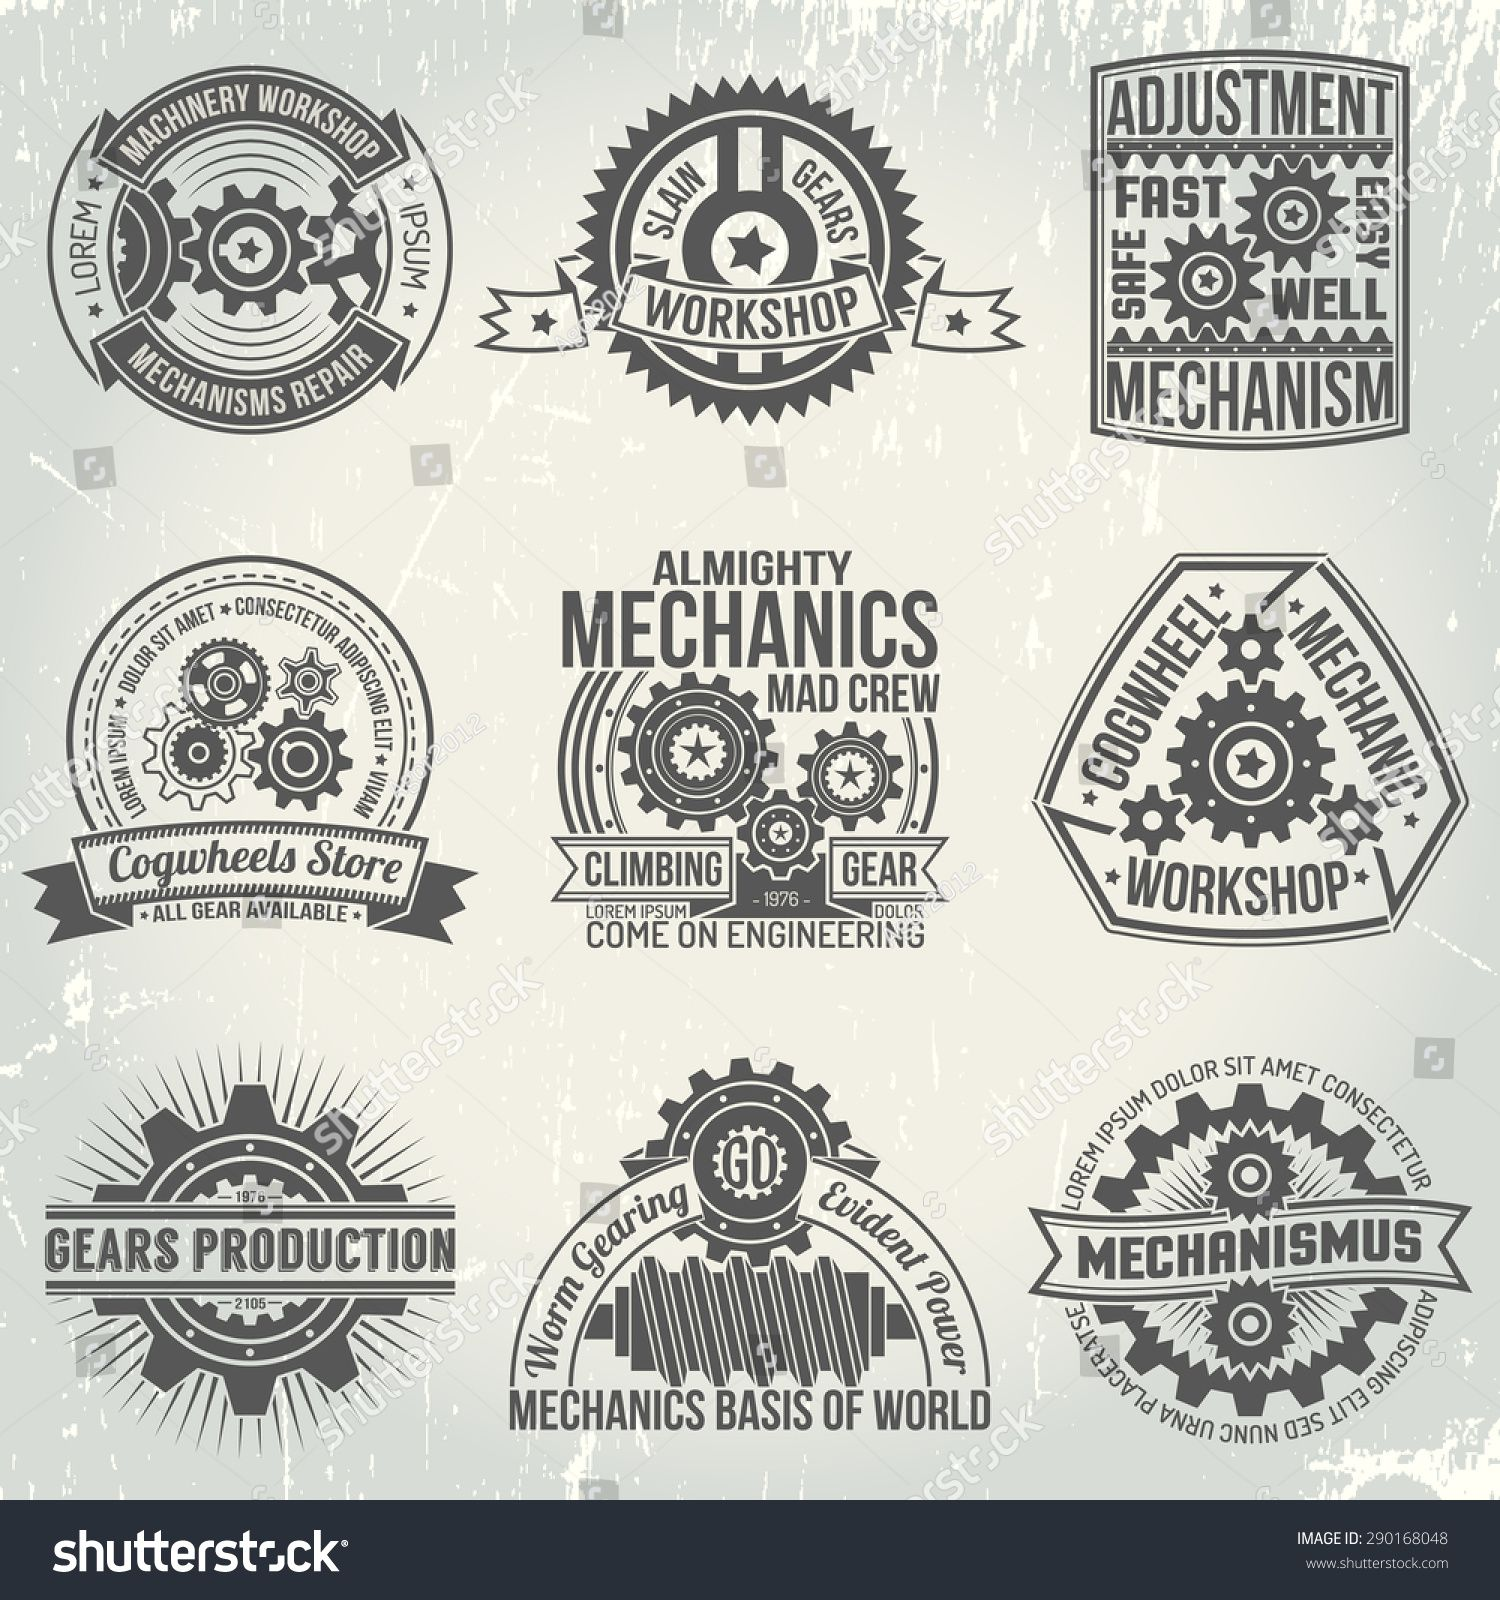 Vintage Logos With Gears And Mechanisms Emblems On The Subject Of Mechanics In Retro Style Background With S Vintage Logo Mechanics Logo Mechanic Logo Design